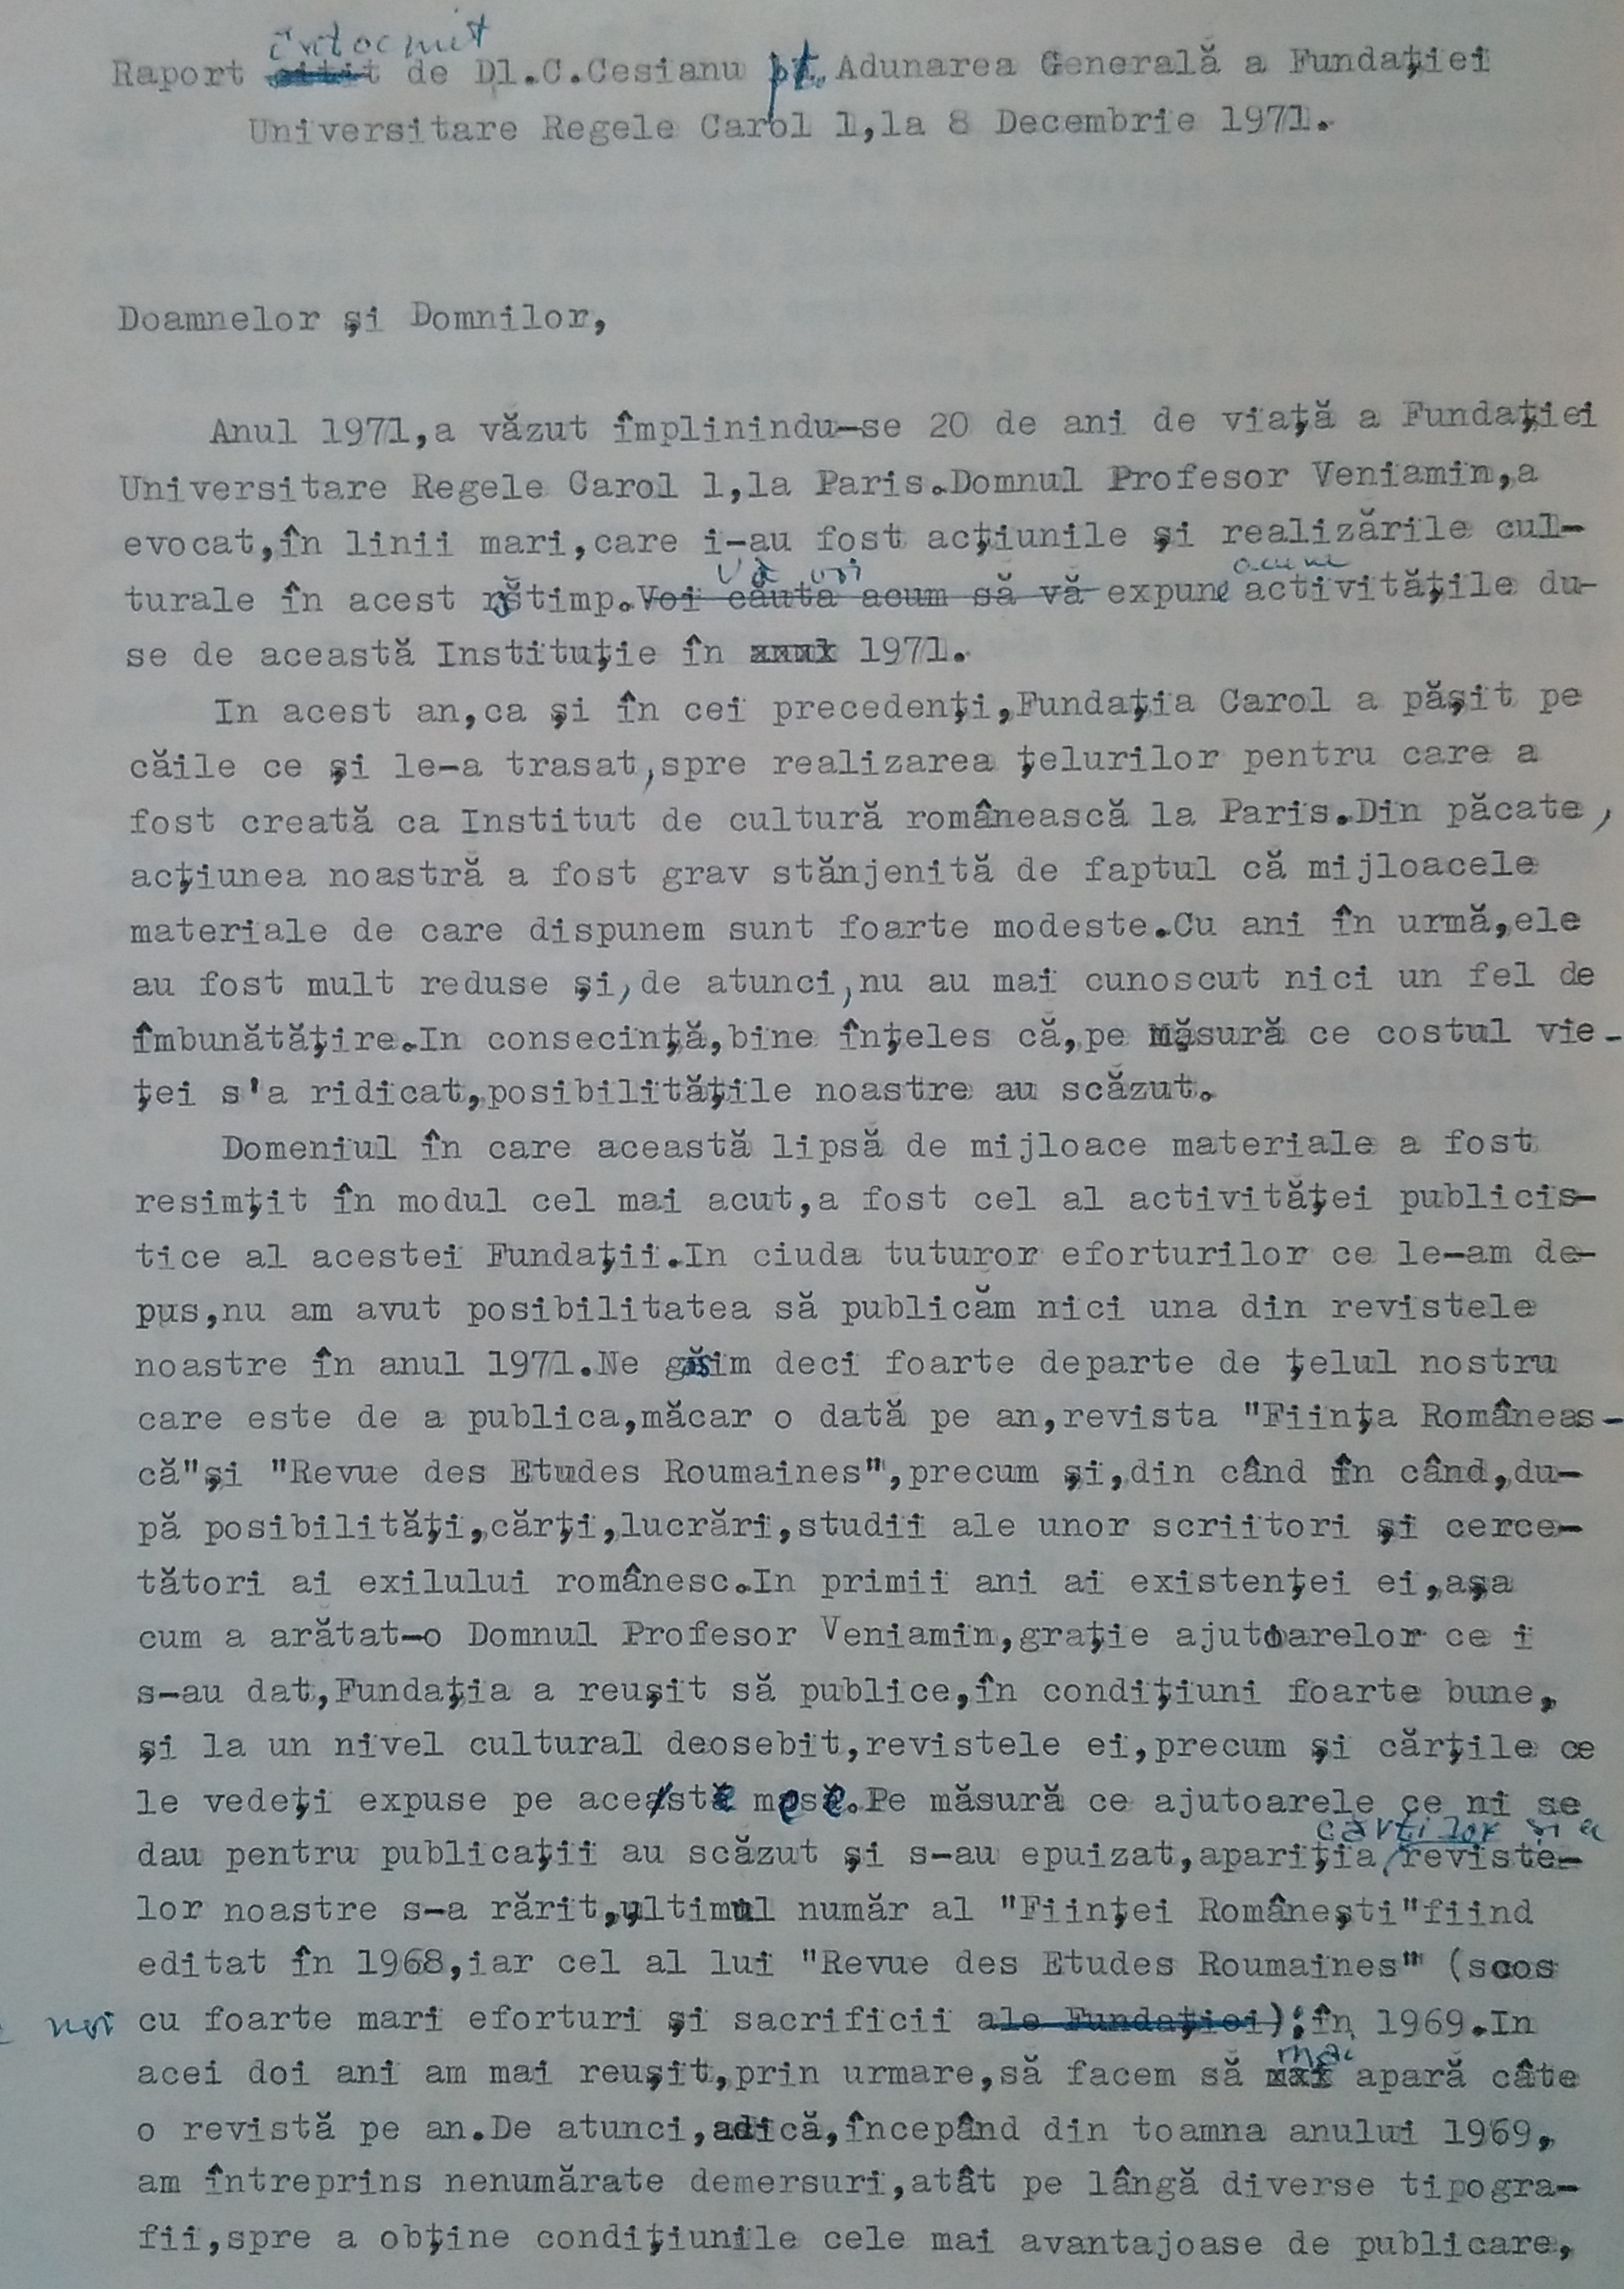 Report by Constantin Cesianu for the General Assembly of Carol I Royal University Foundation, Paris, 1971